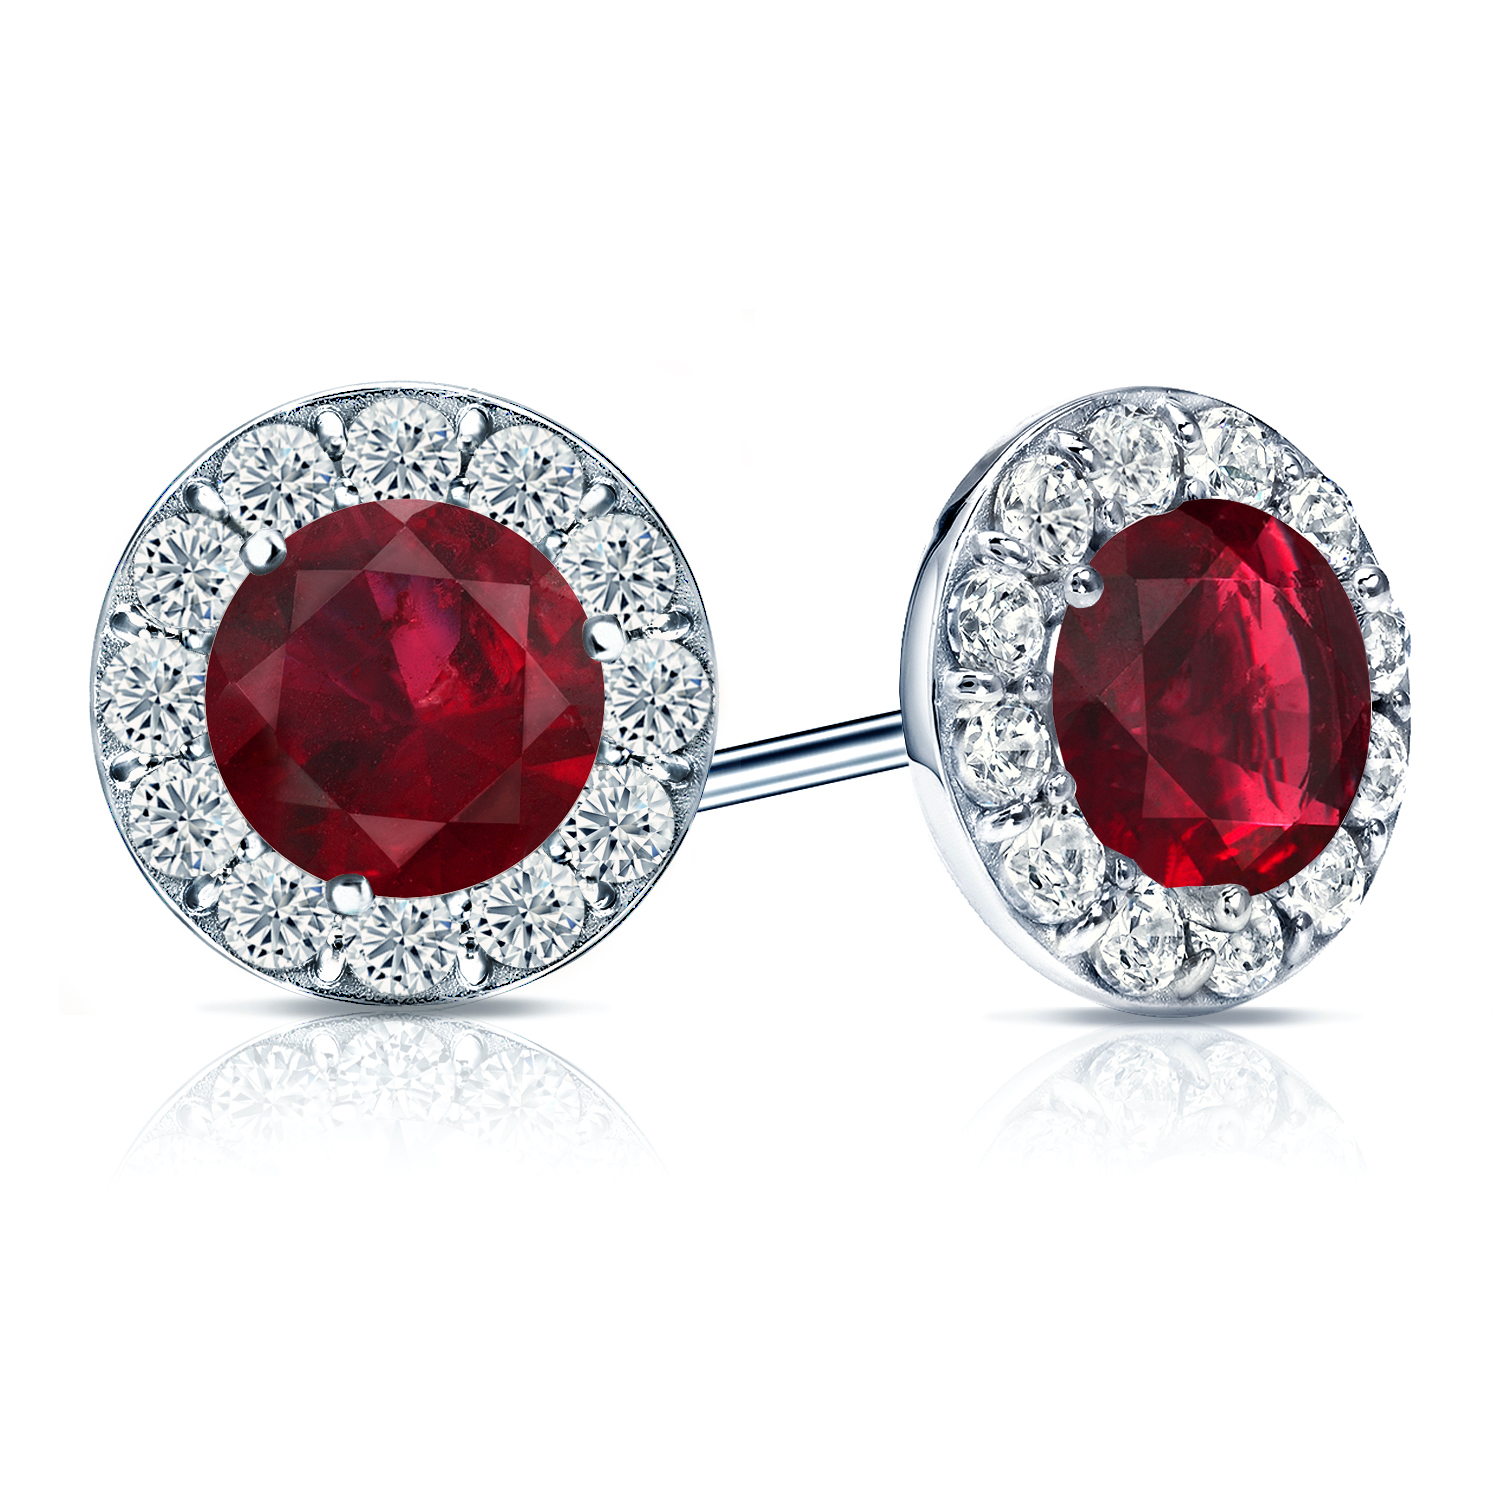 Certified 0.50 cttw Round Ruby Gemstone Stud Earrings in 14k White Gold Halo (AAA)